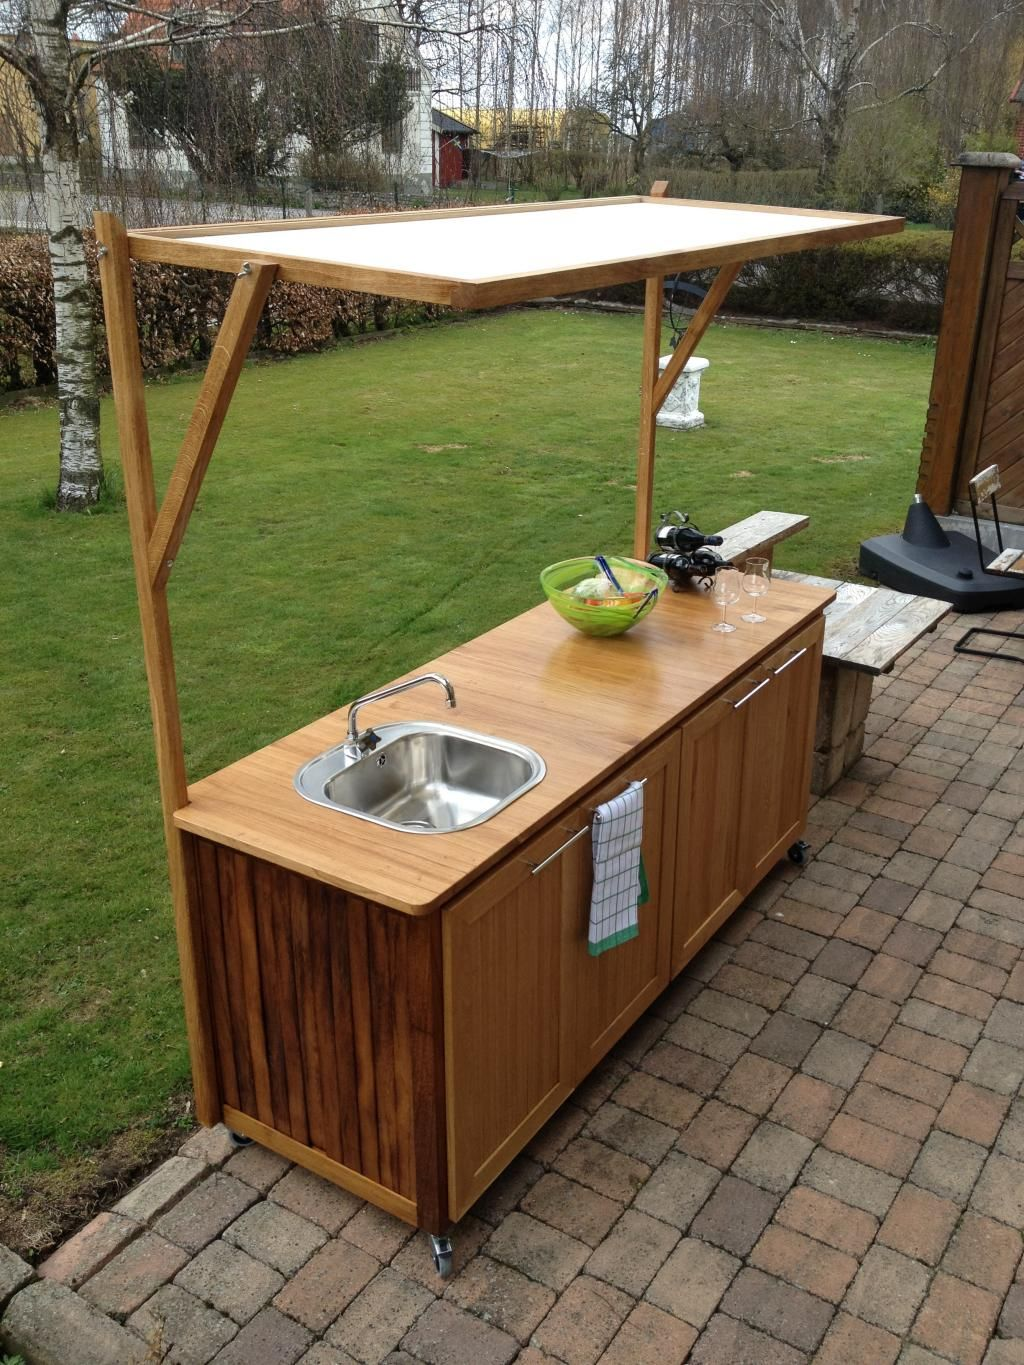 3 Plans To Make A Simple Outdoor Kitchen Build Outdoor Kitchen